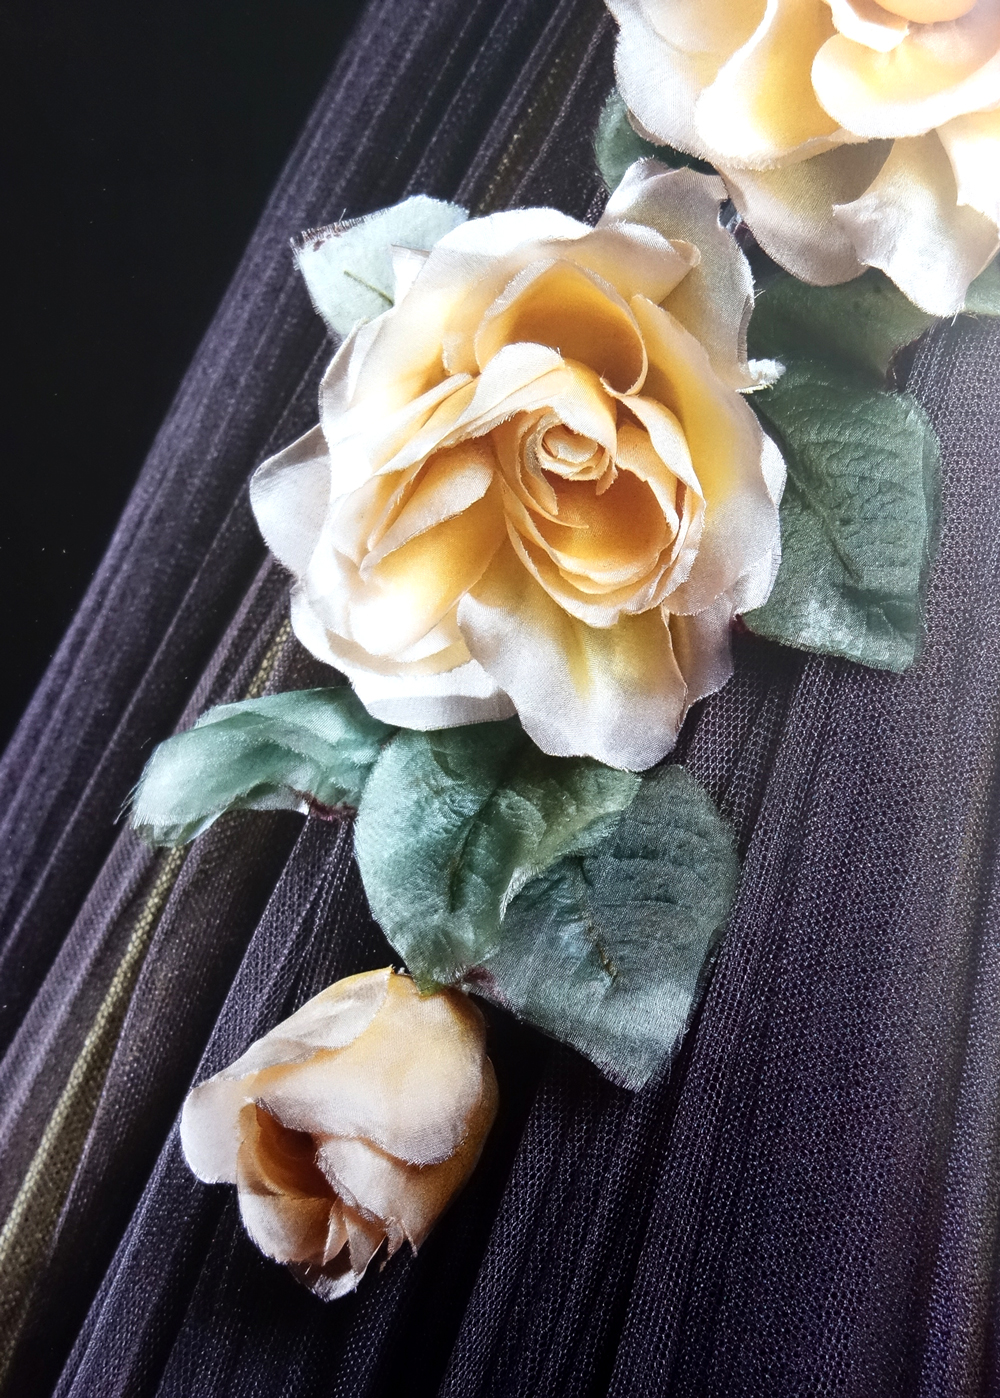 silk roses detail of Marcel Rochas tulle dress 1951 via www.fashionedbylove.co.uk